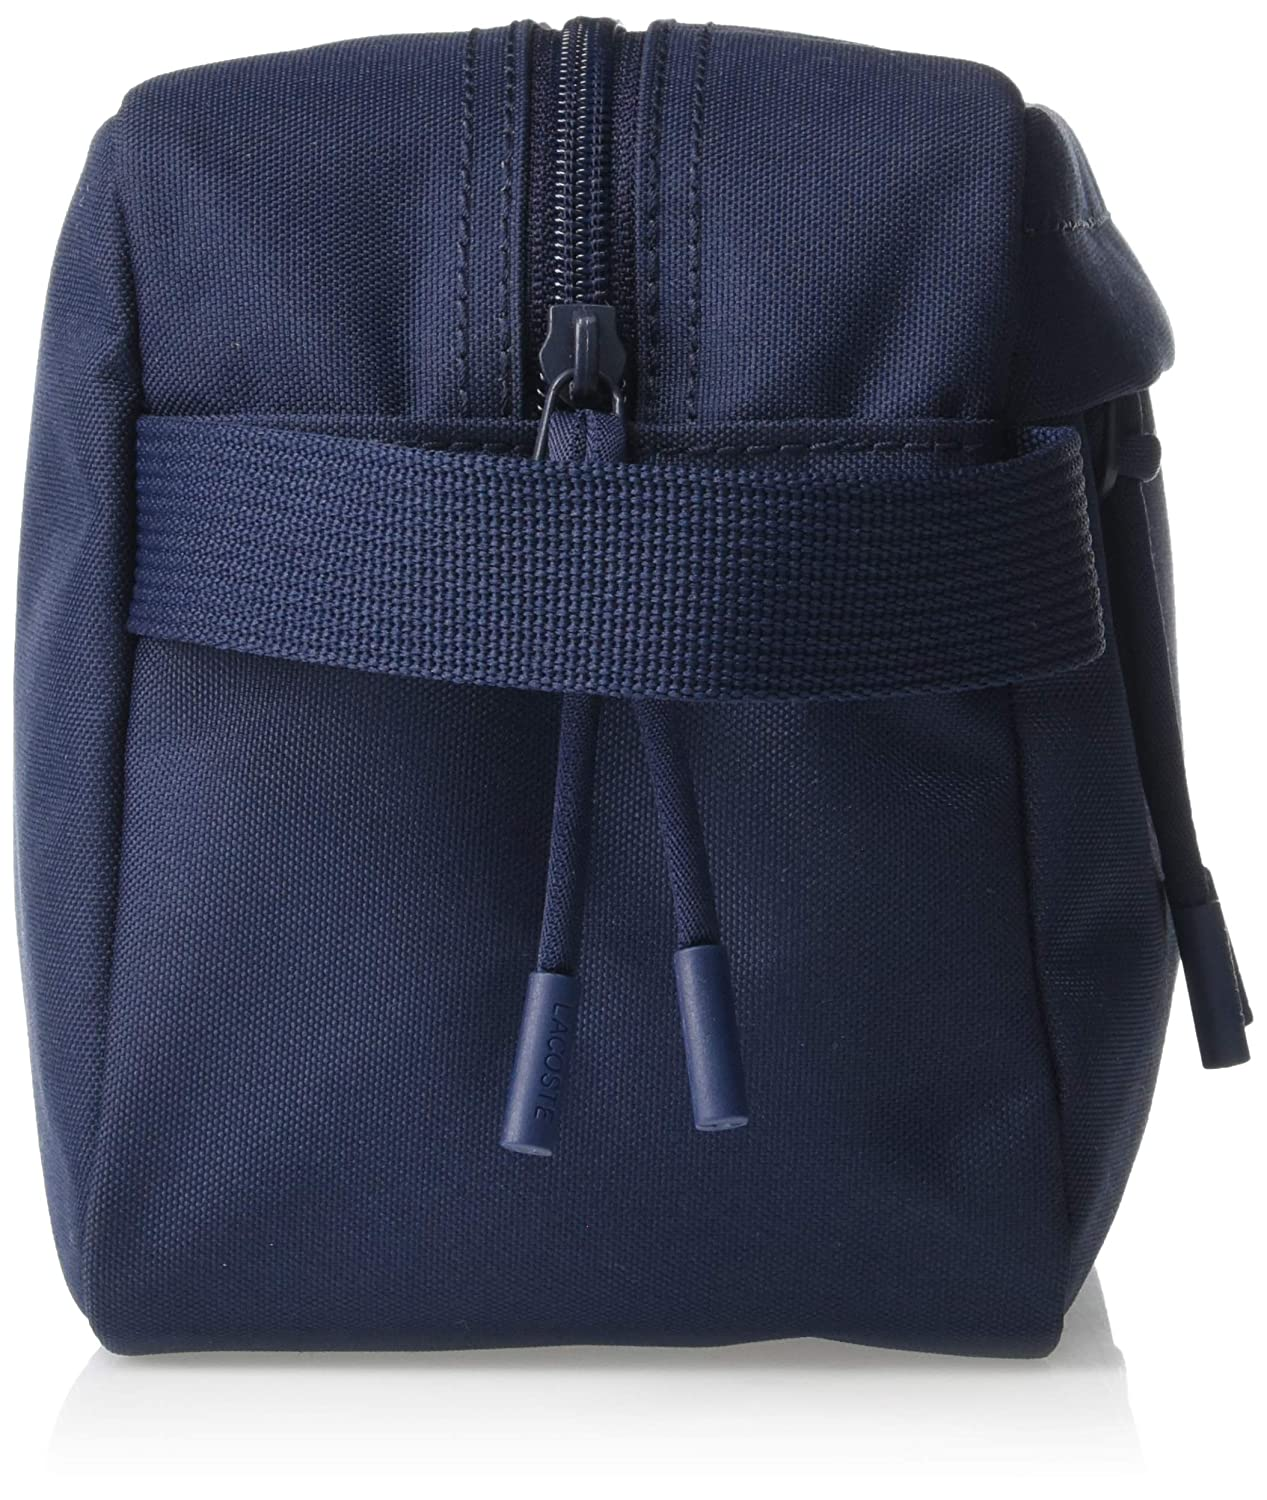 7d48566db7 Amazon.com: Lacoste Men's Solid Toiletry Pouch, peacoat, 00: Clothing